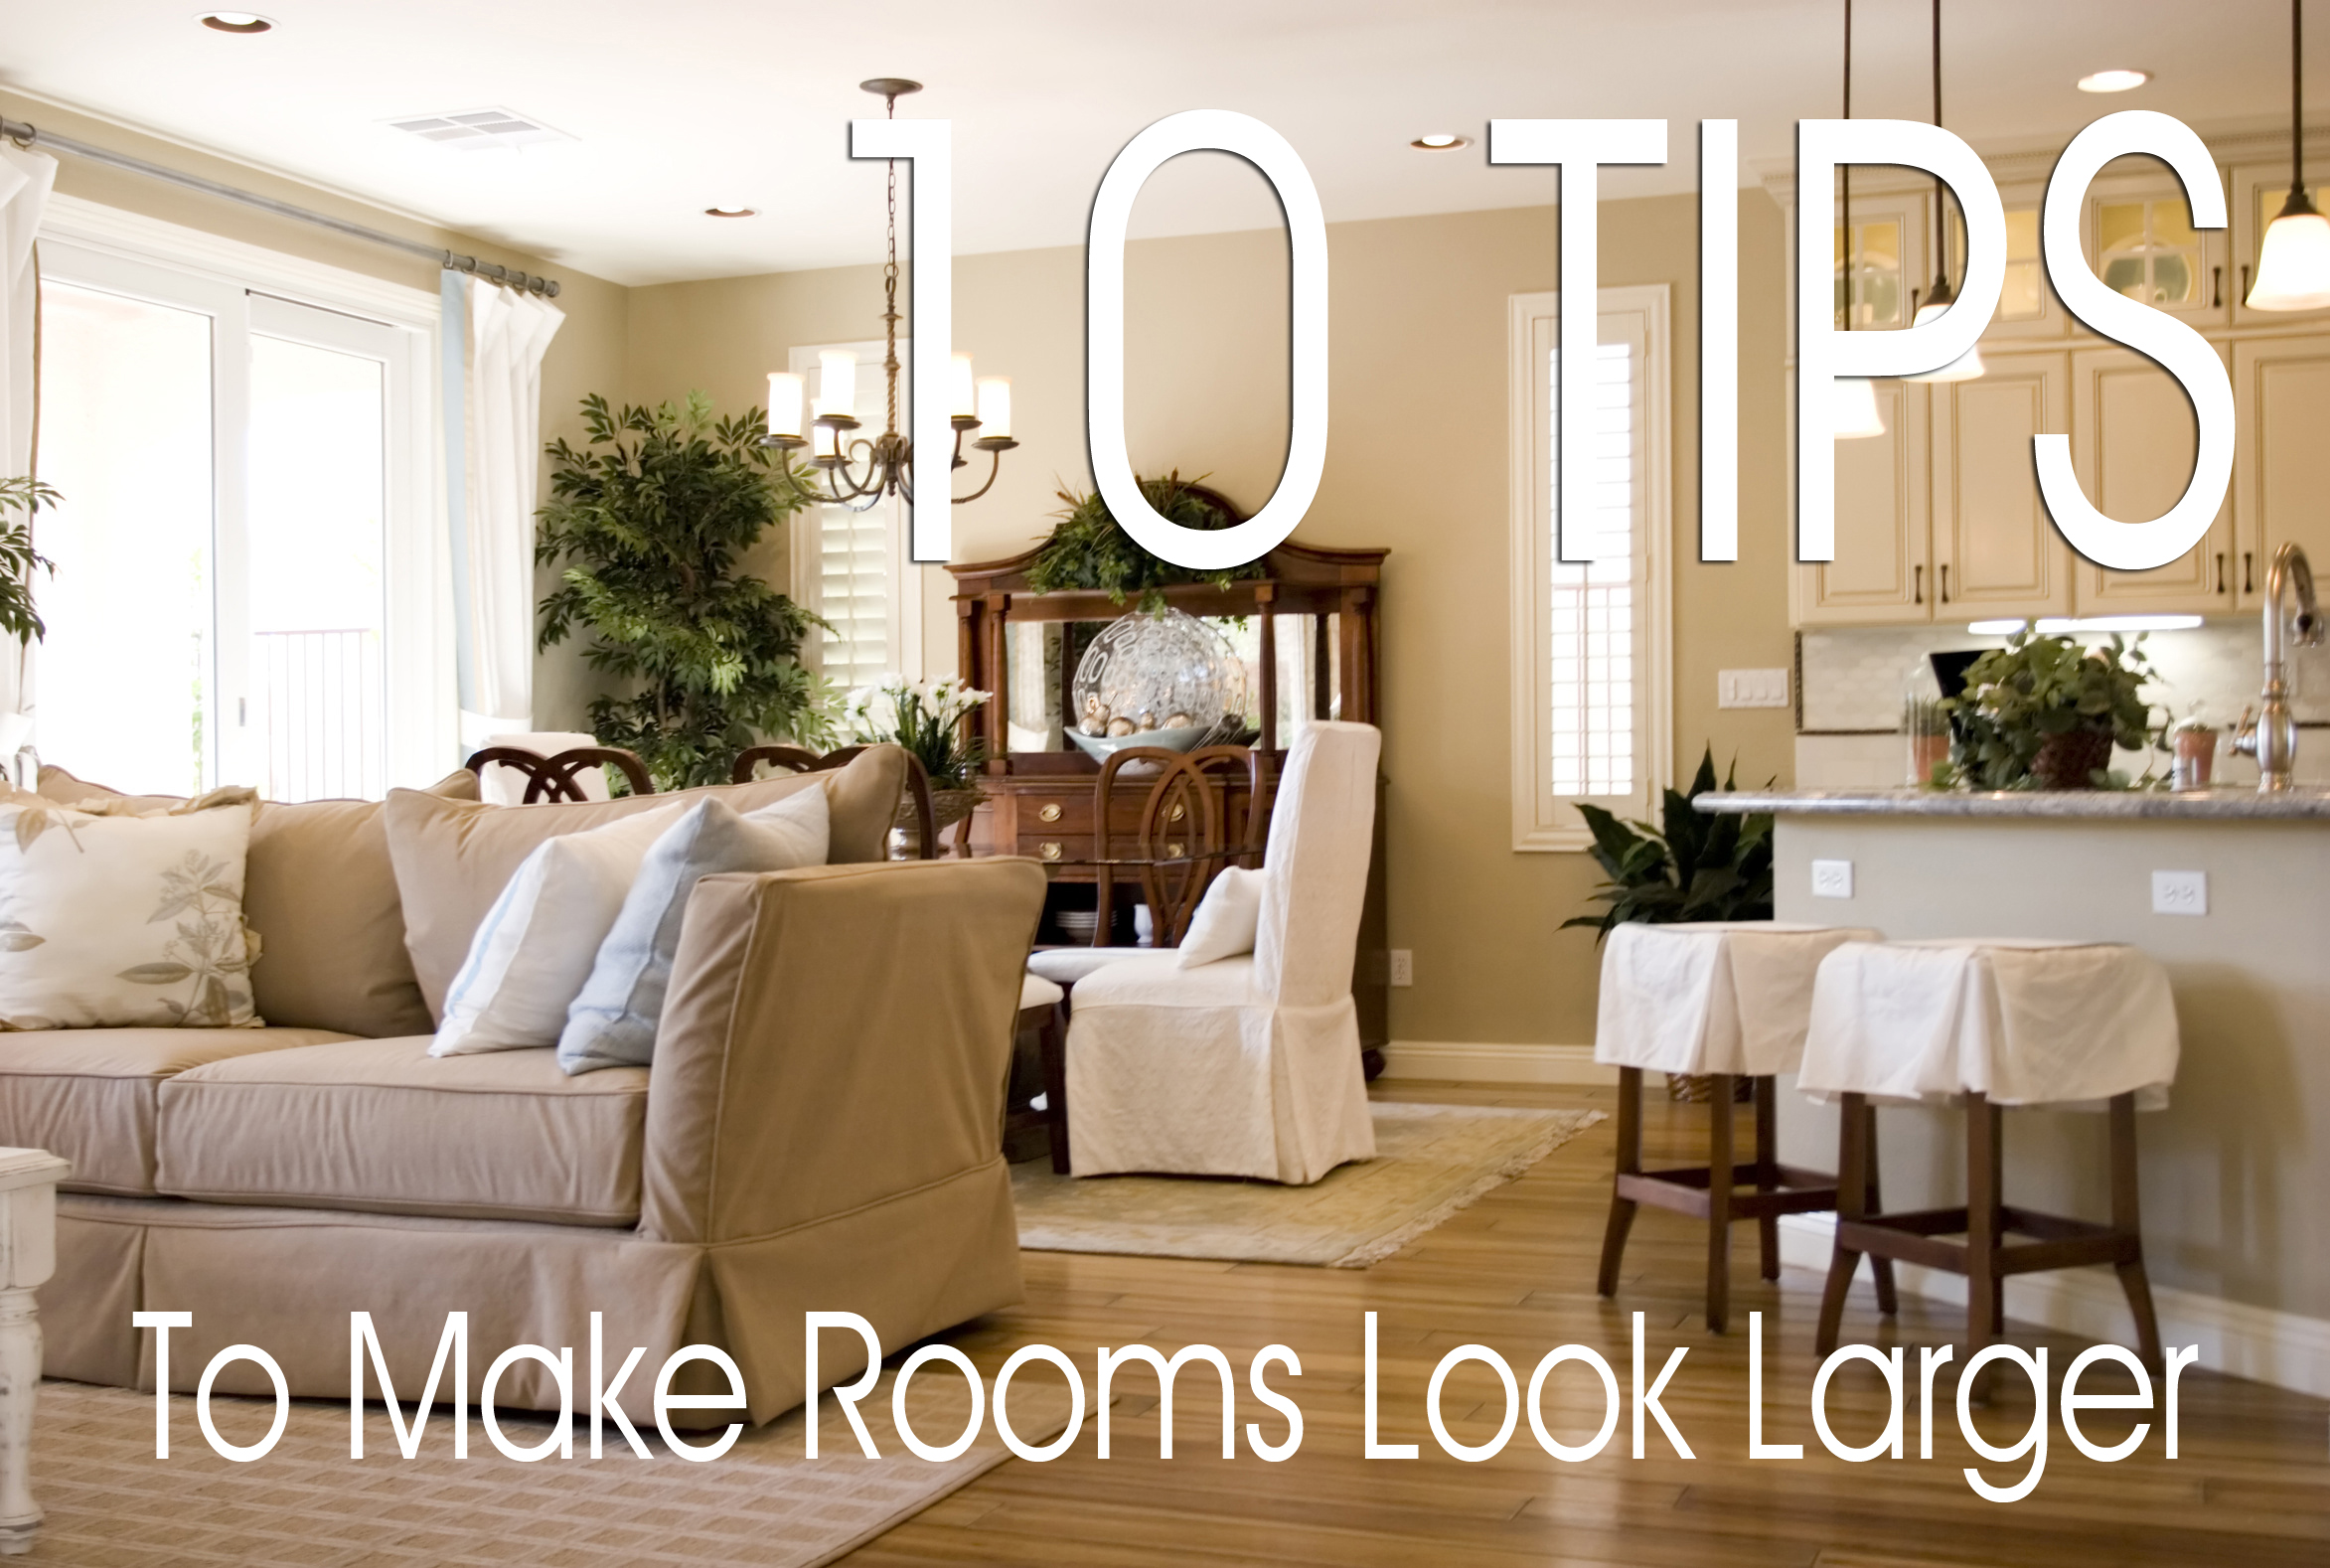 How To Make Small Rooms Look Larger Sibcy Cline Blog